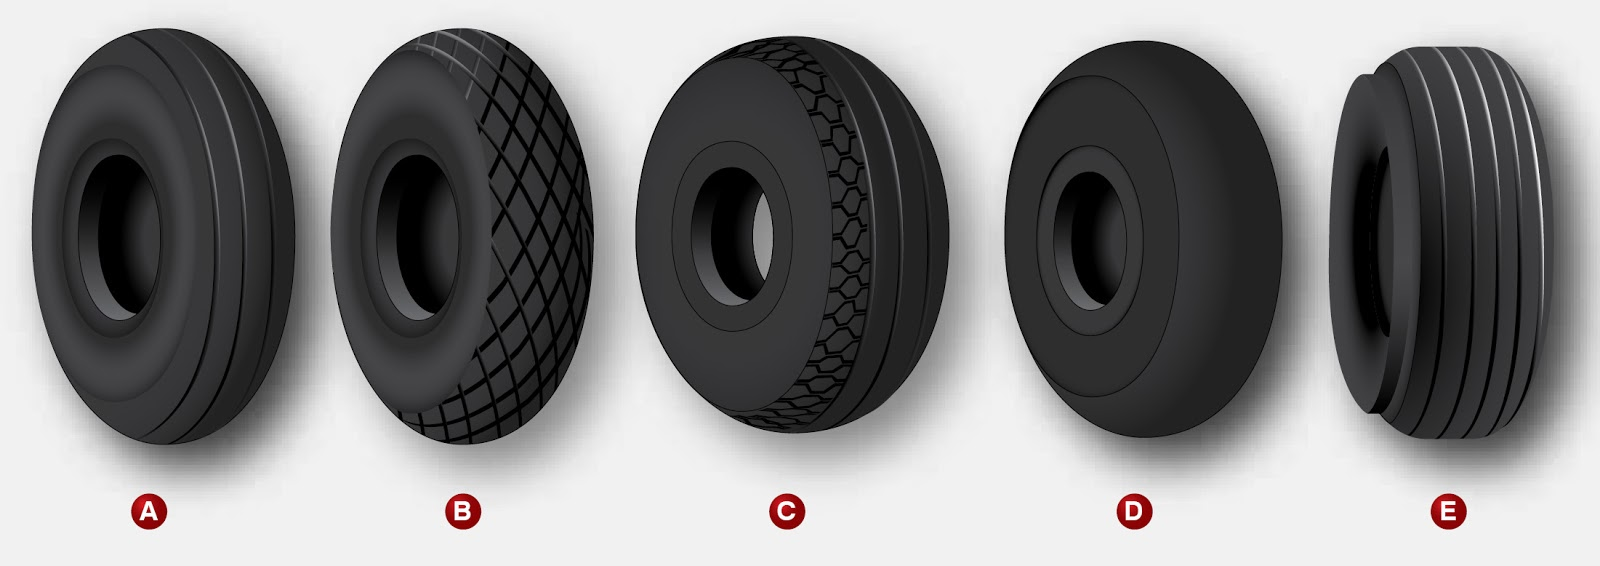 Aircraft tires and tubes